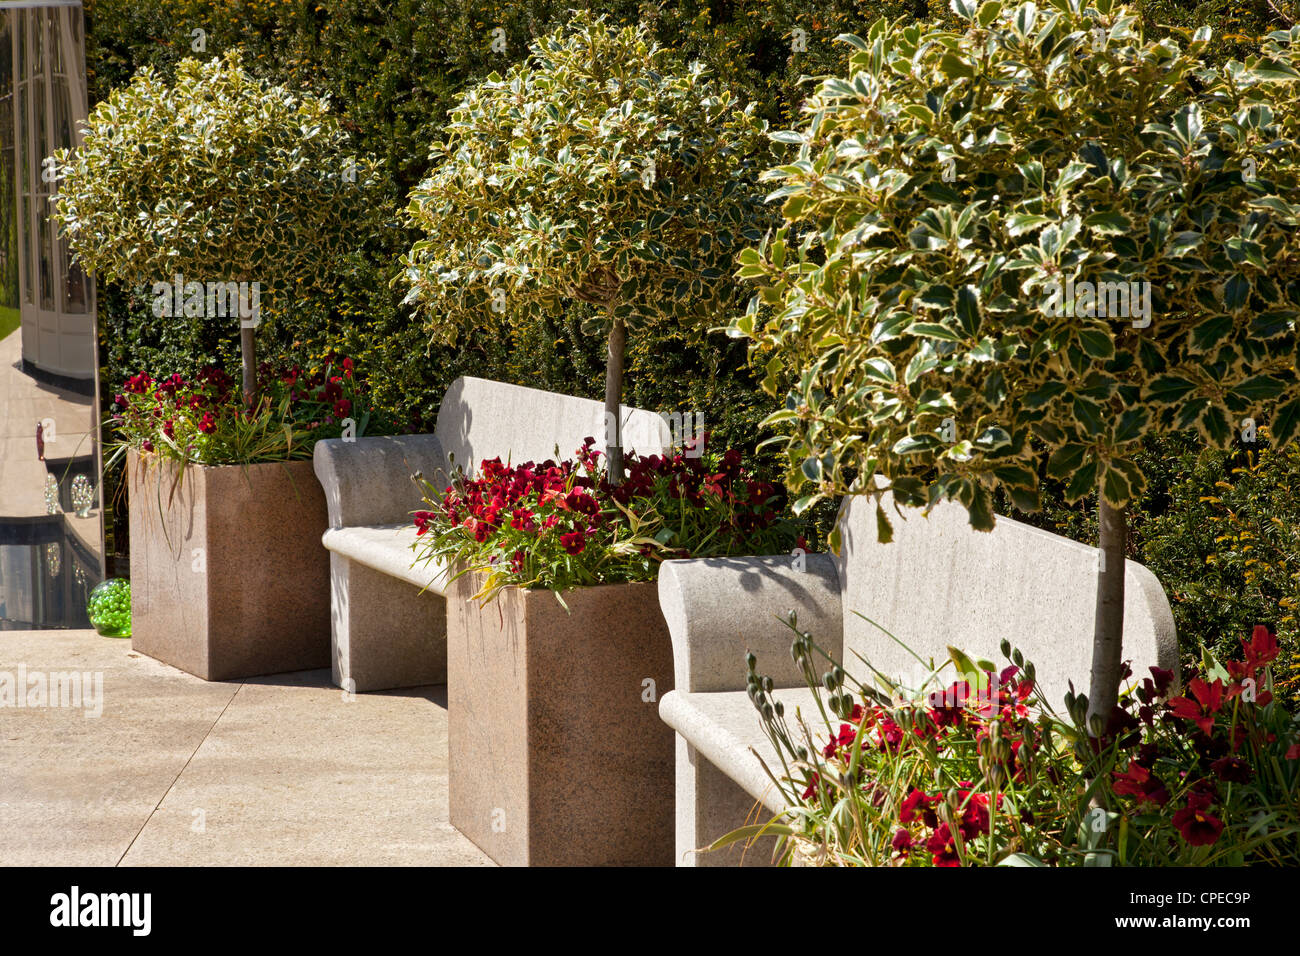 Contemporary Modern Garden With Polished Stone Planters